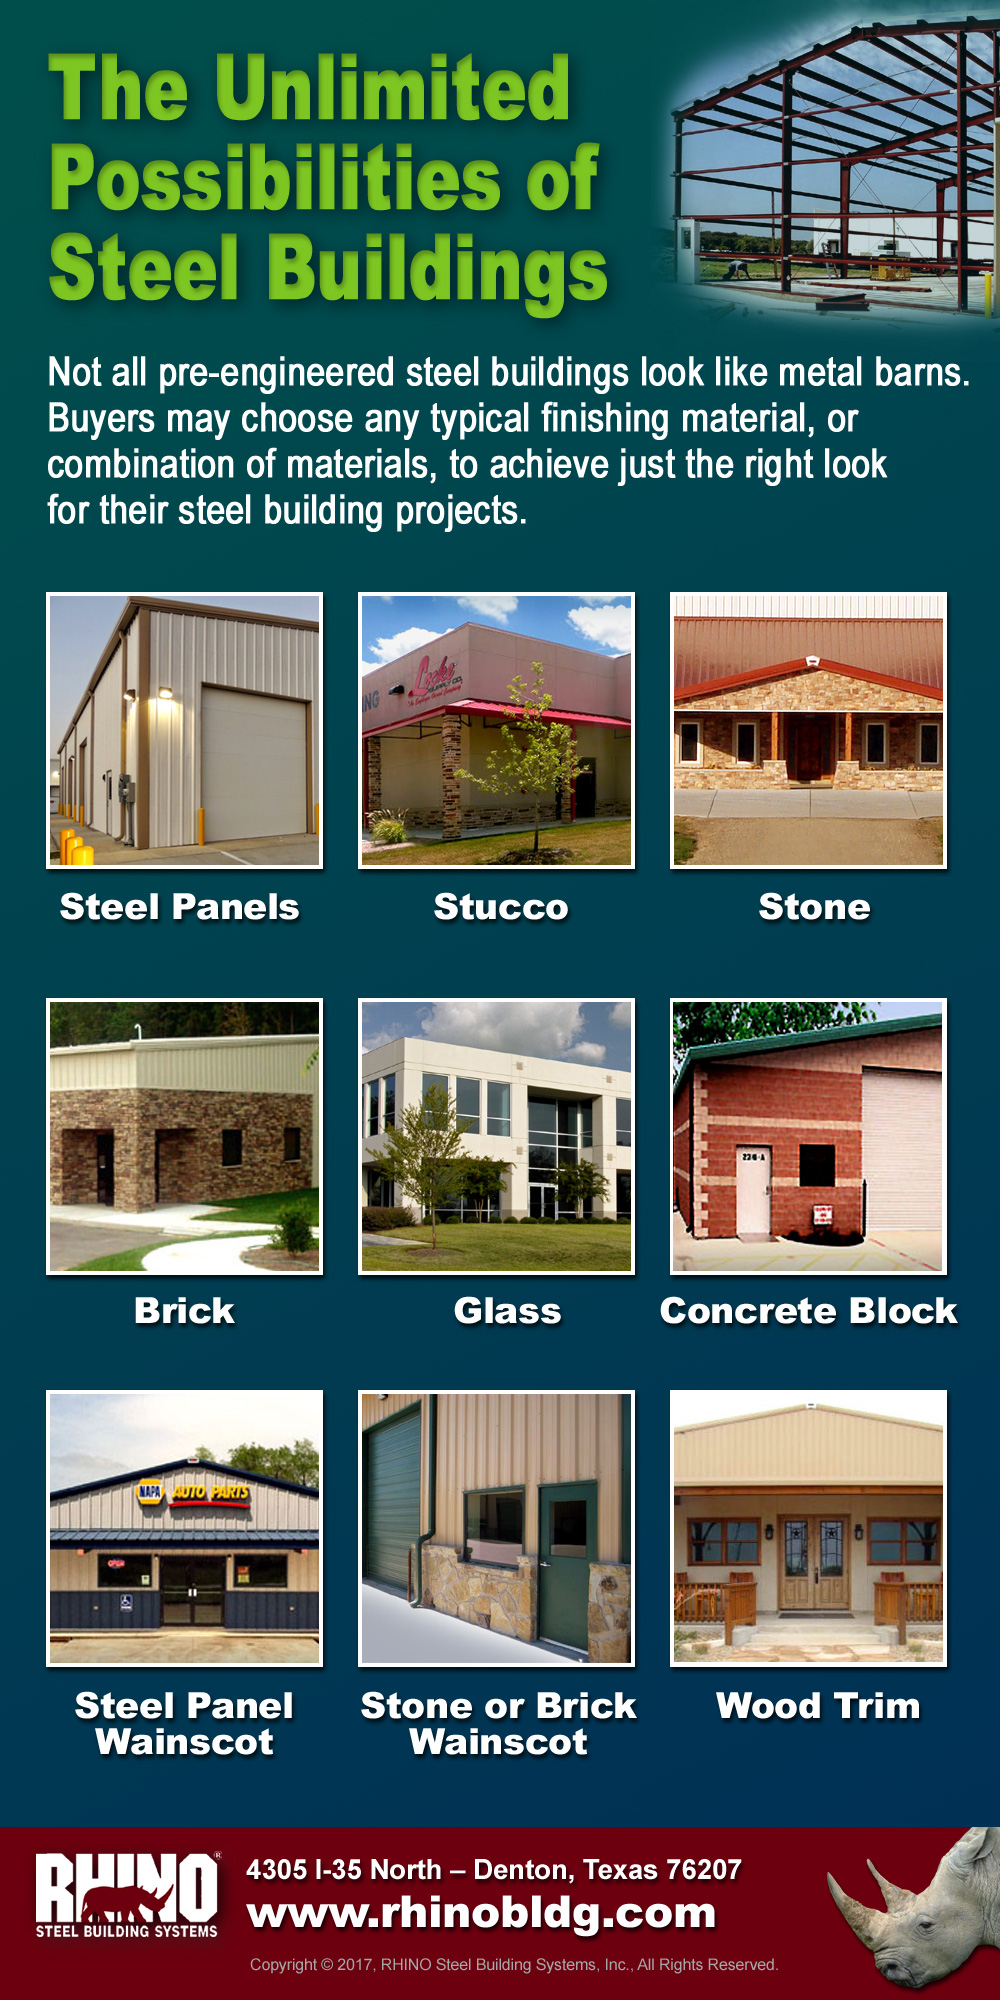 RHINO infographic displaying some of the exterior treatment options possible with a RHINO steel building kit.